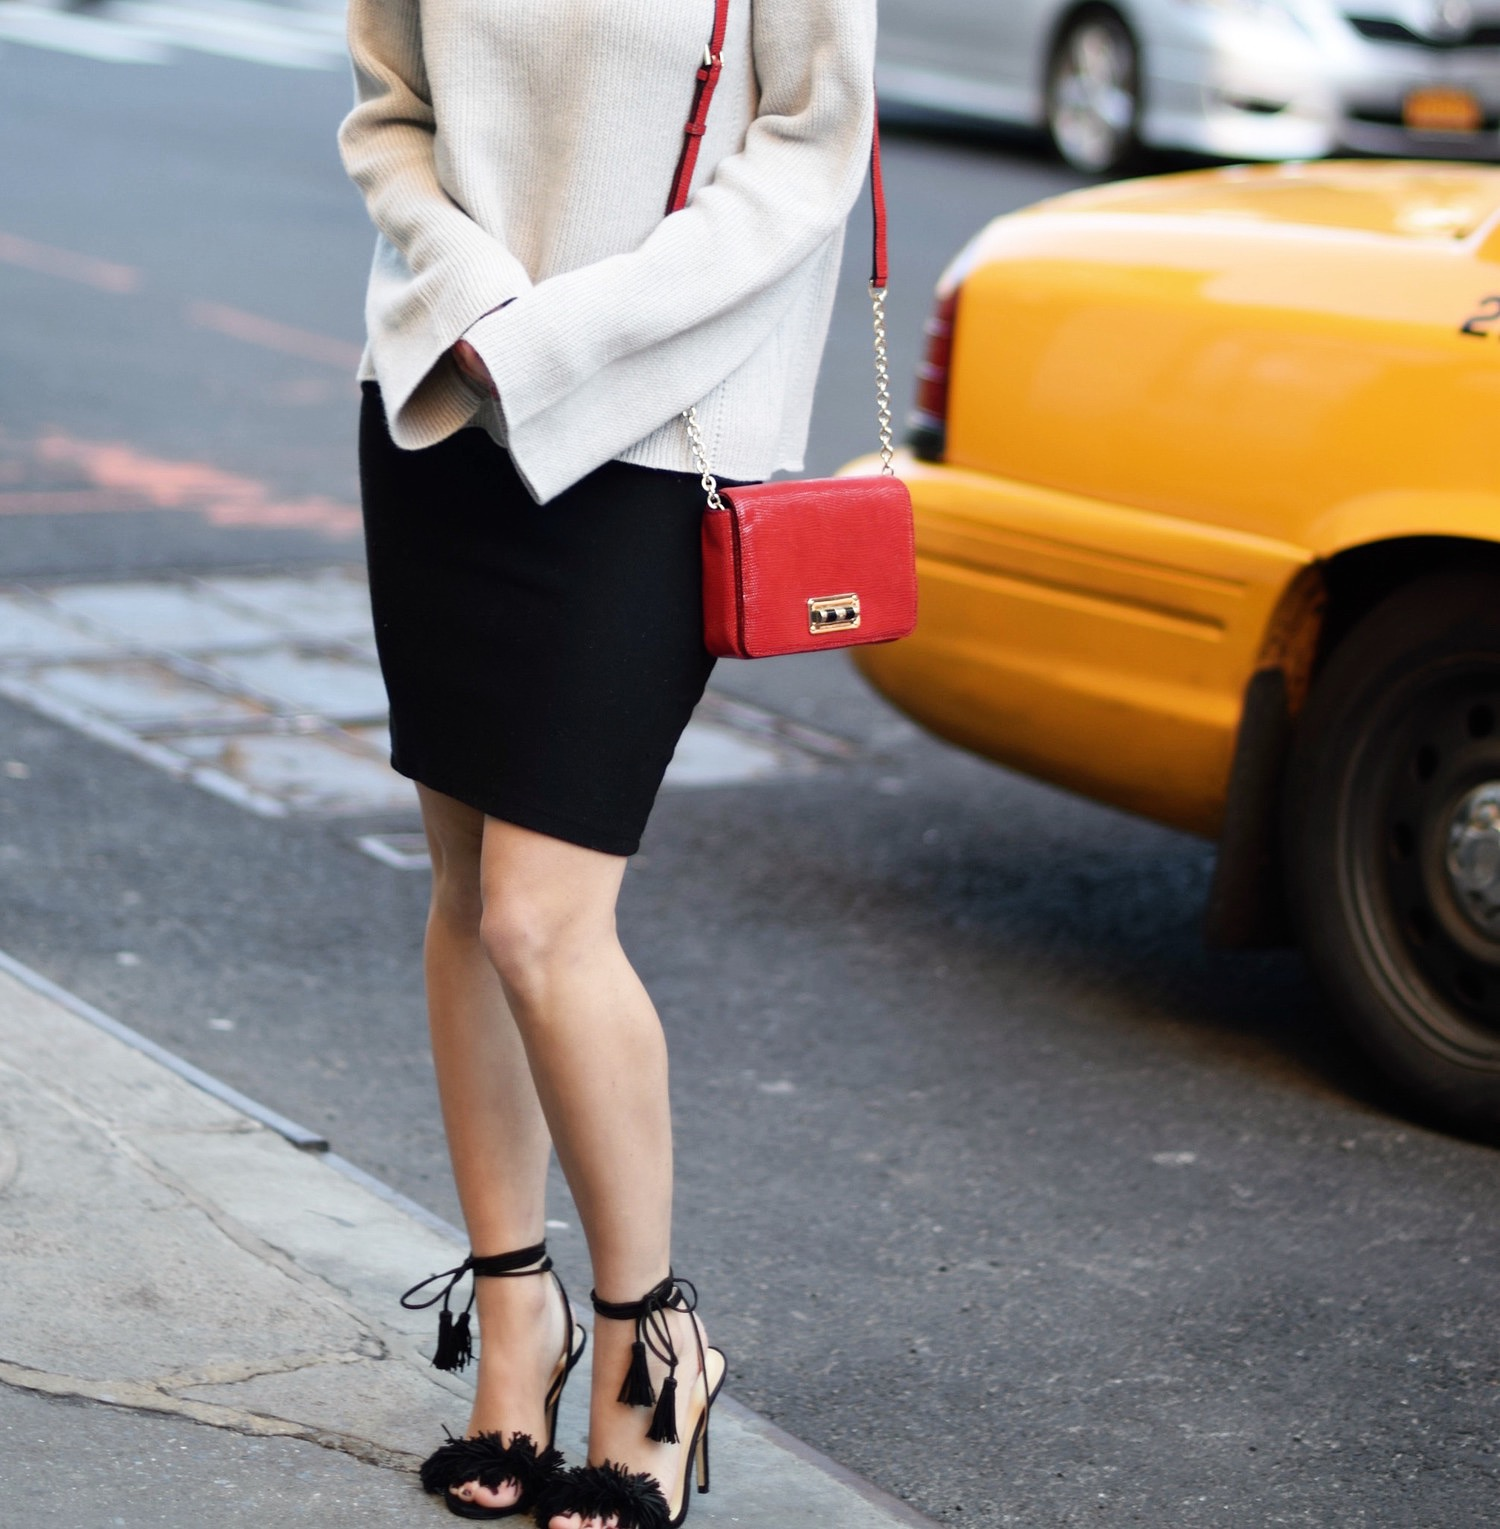 Helmut Lang Sweater Ivanka Trump Fringe Sandals Louboutins & Love Fashion Blog Esther Santer NYC Street Style Blogger Outfit OOTD Mini Skirt Summer Beautiful Forever 21 Photoshoot Model Chunky Knit Designer Clothes Shoes Nordstrom DVF Red Bag Shopping.JPG